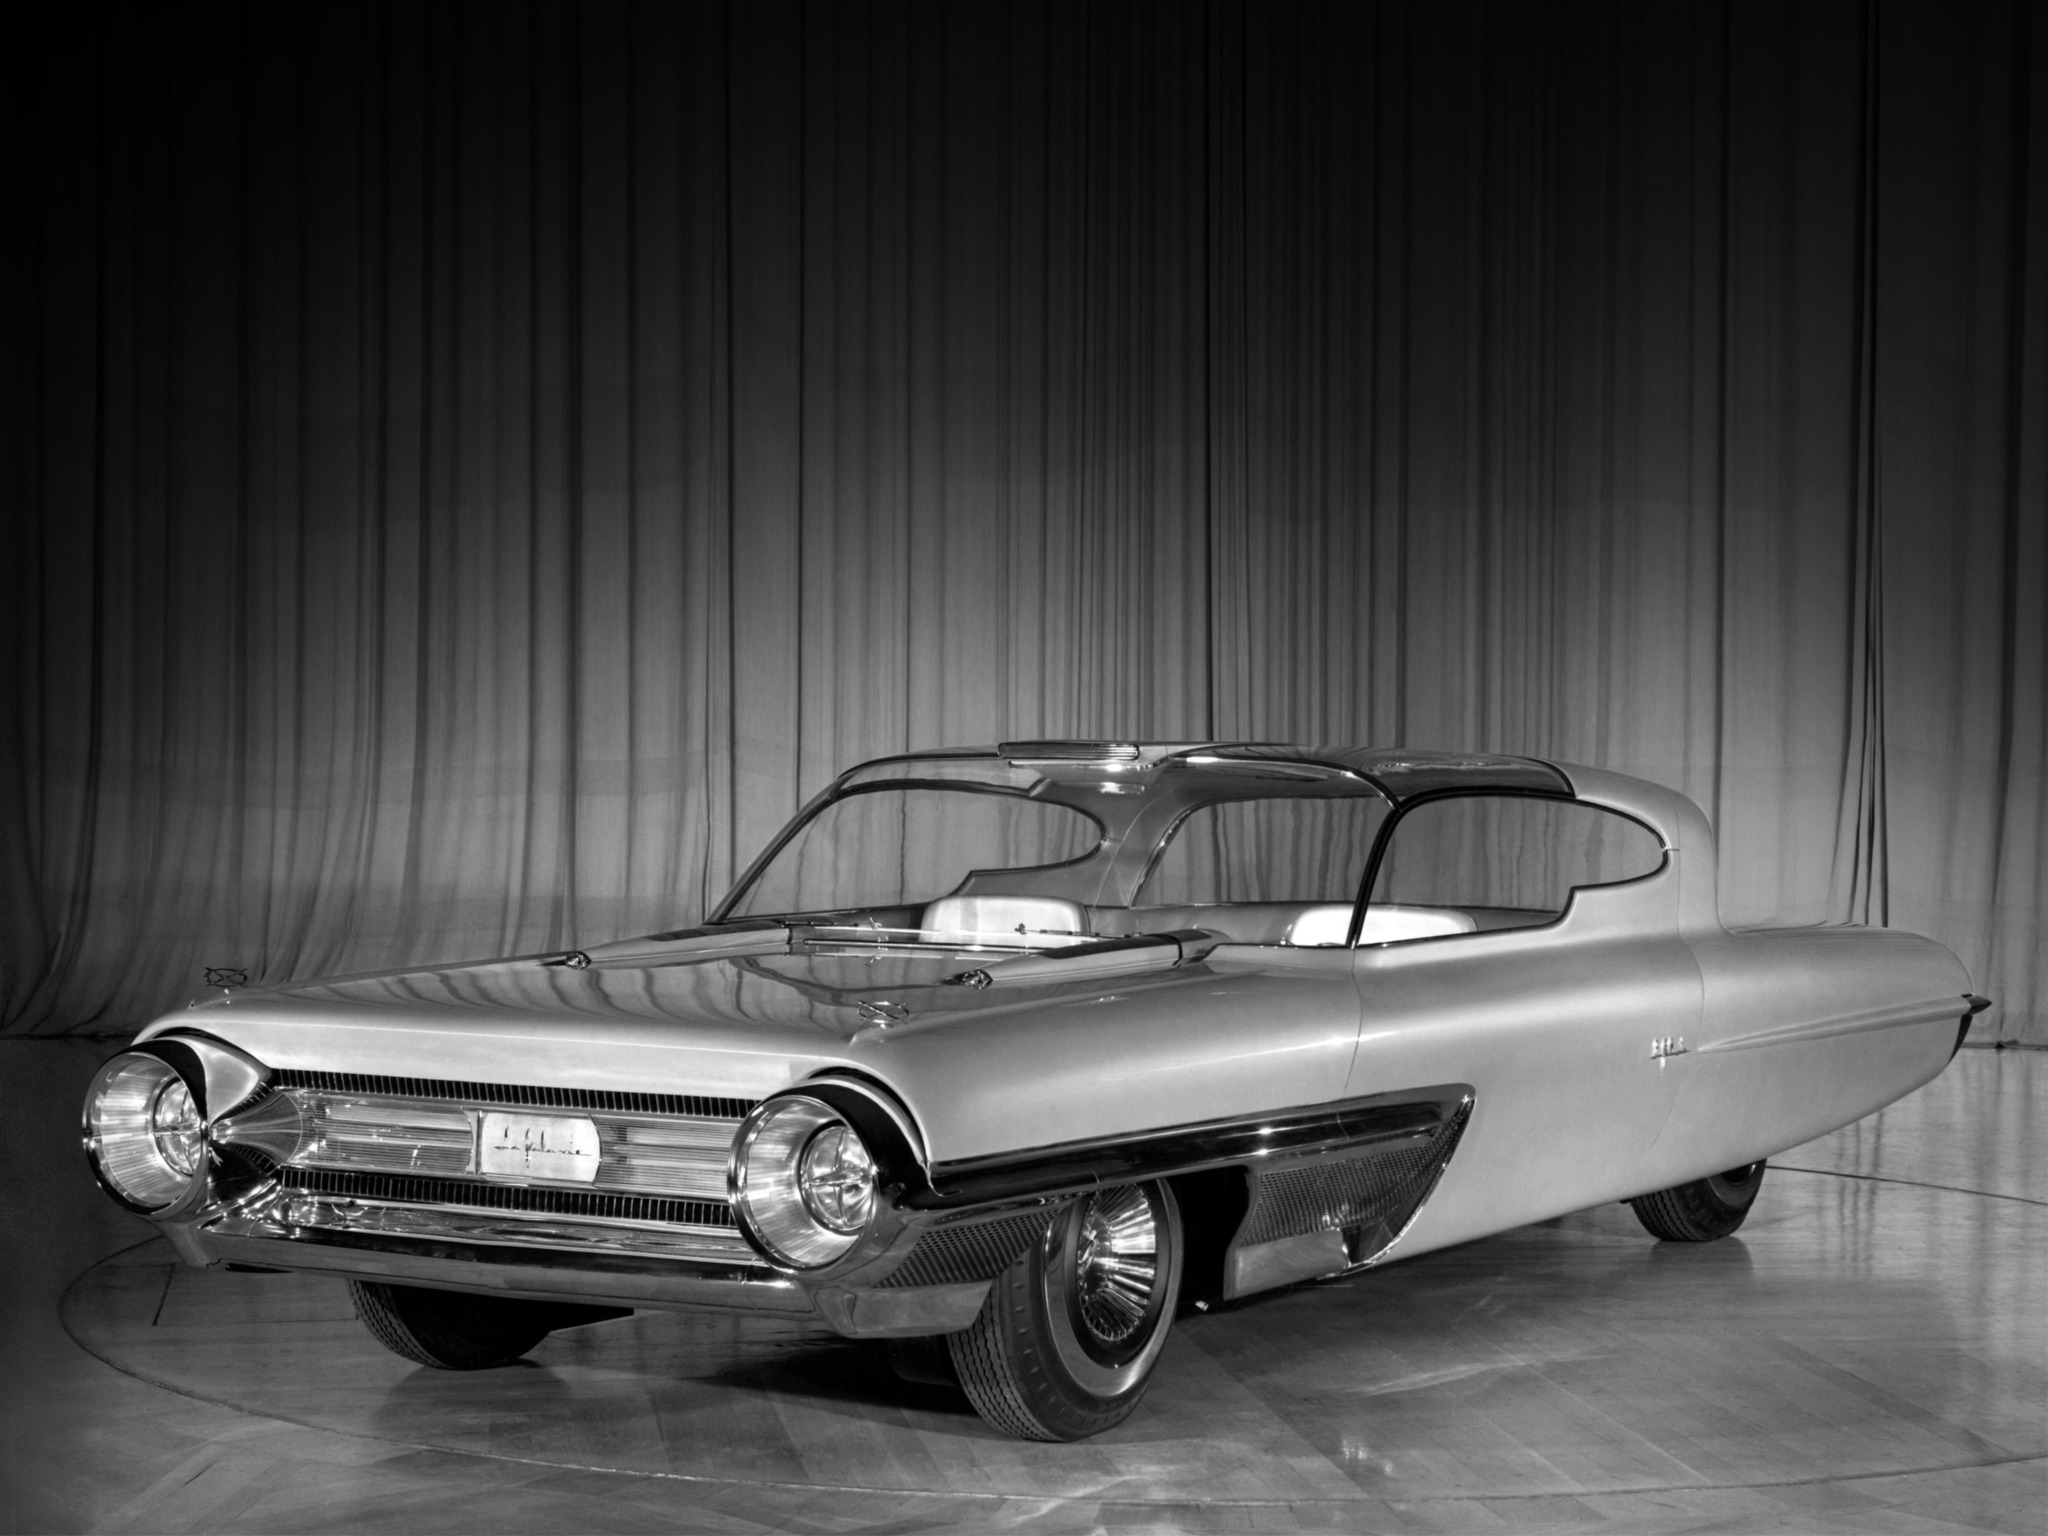 Ford La Galaxie Concept Car (1958) – Old Concept Cars